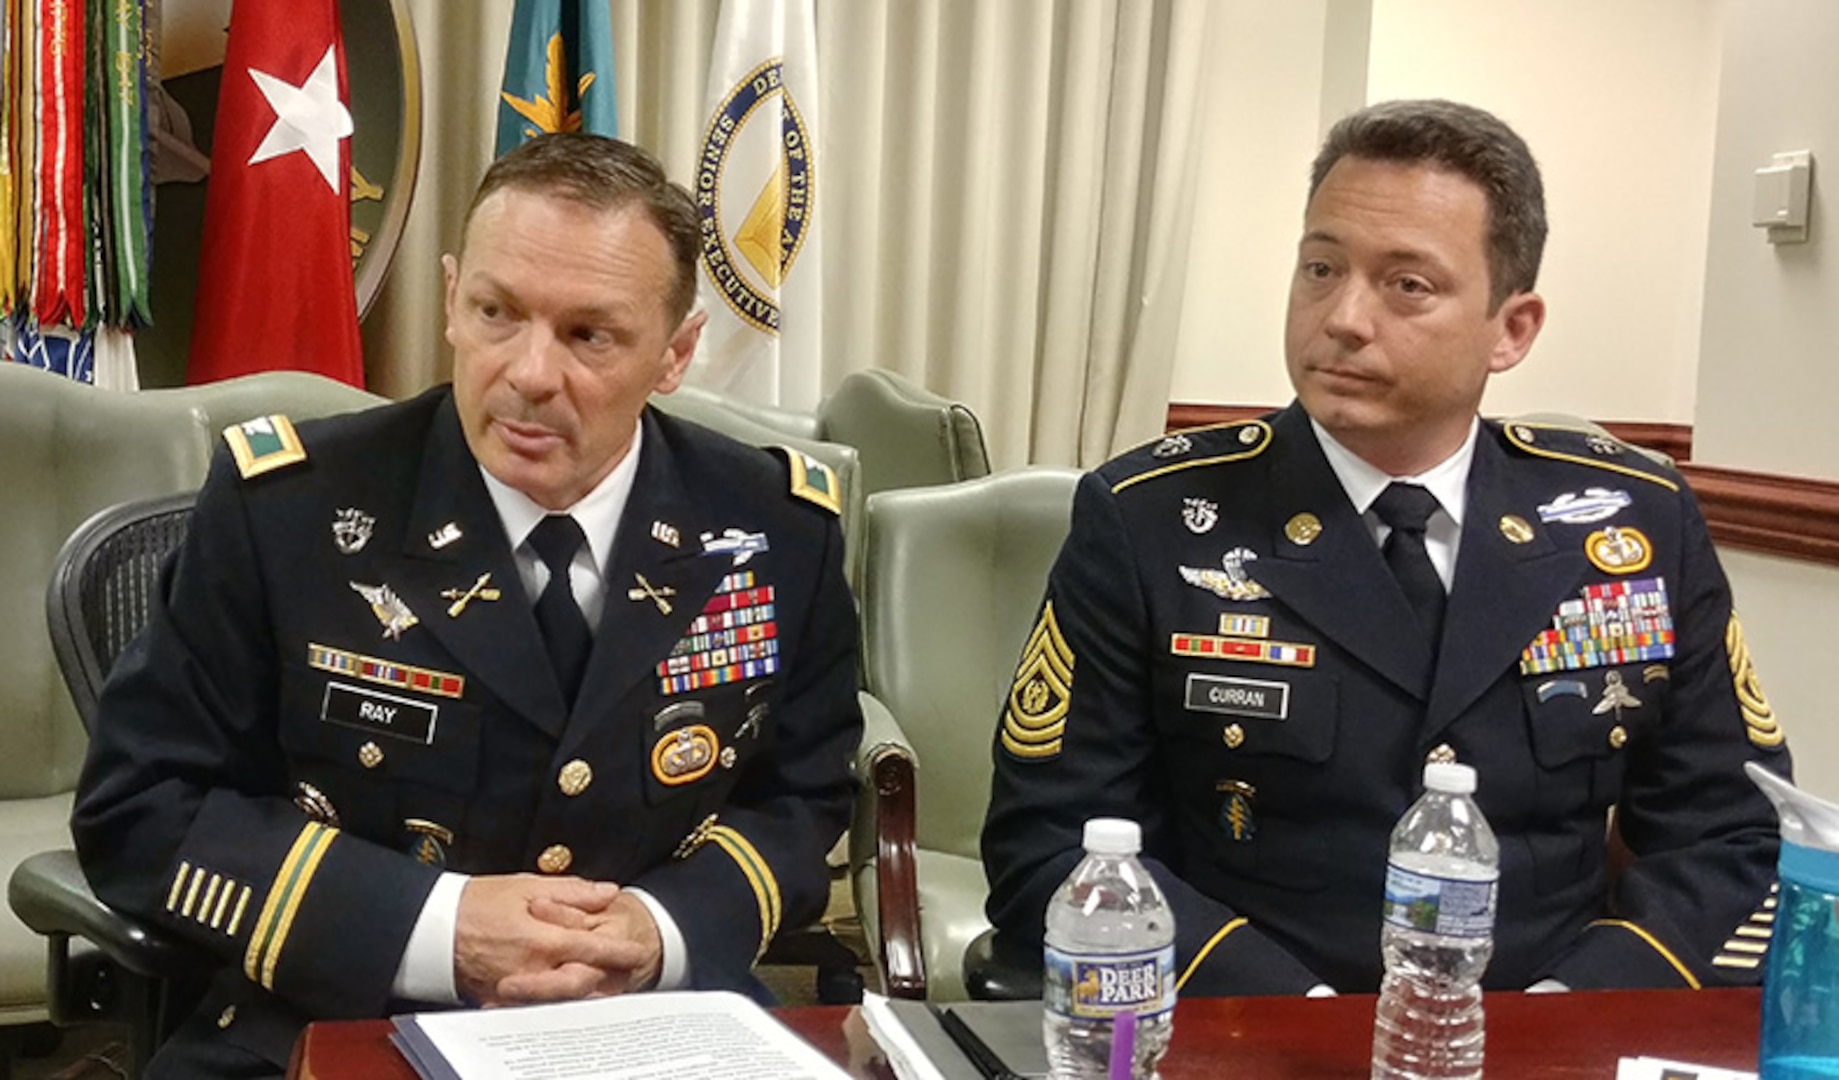 Relationship with Allies Key to Maintaining Competitive Edge, Says Special Forces Commander